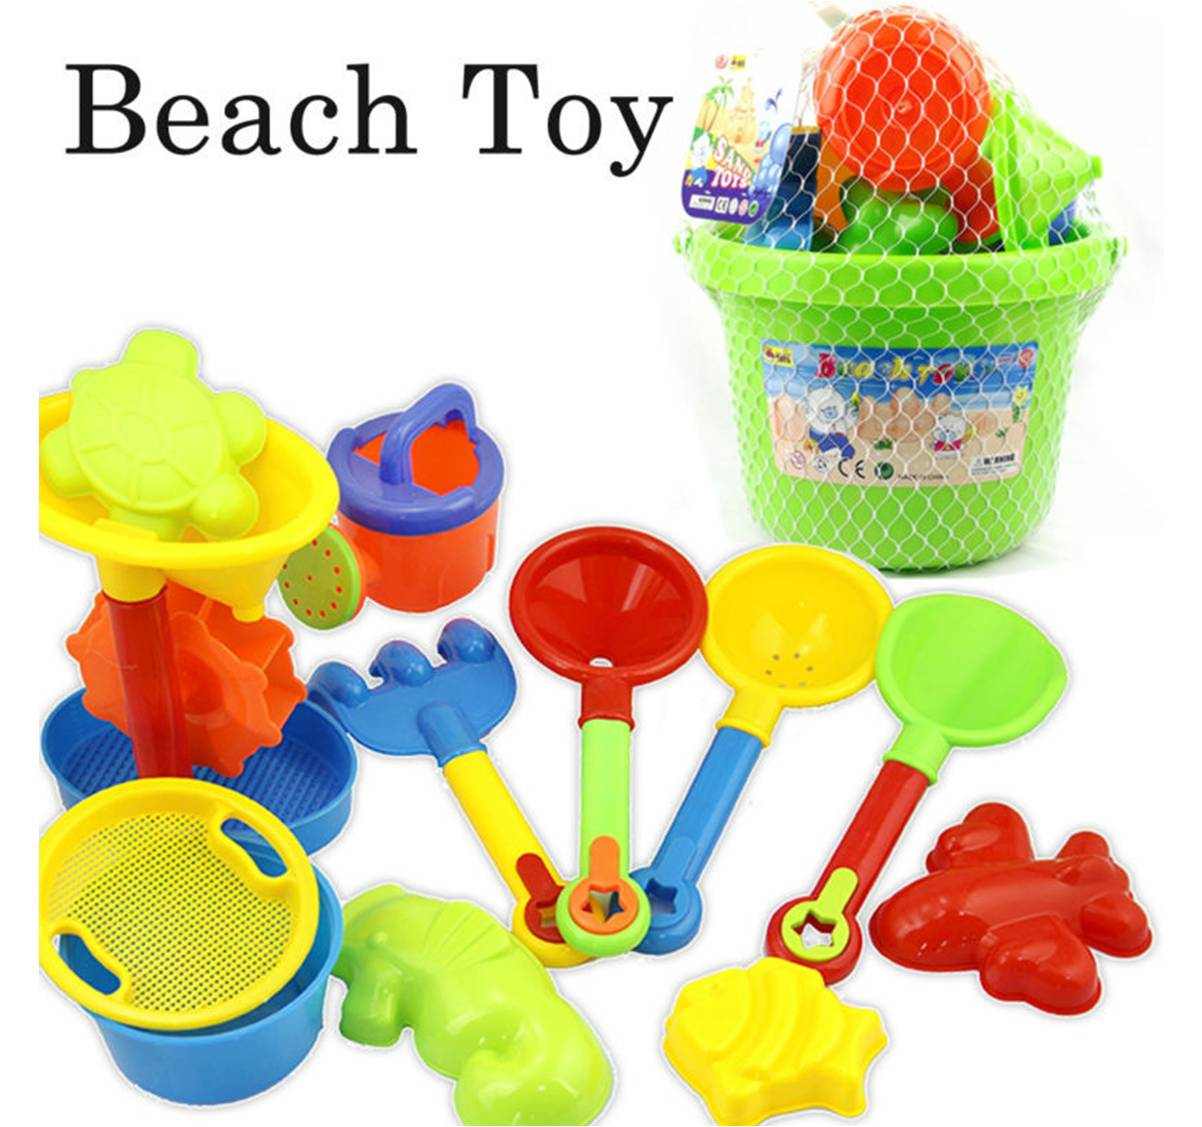 Toys For Beach : Kids beach toy set coming soon sports and games ltd